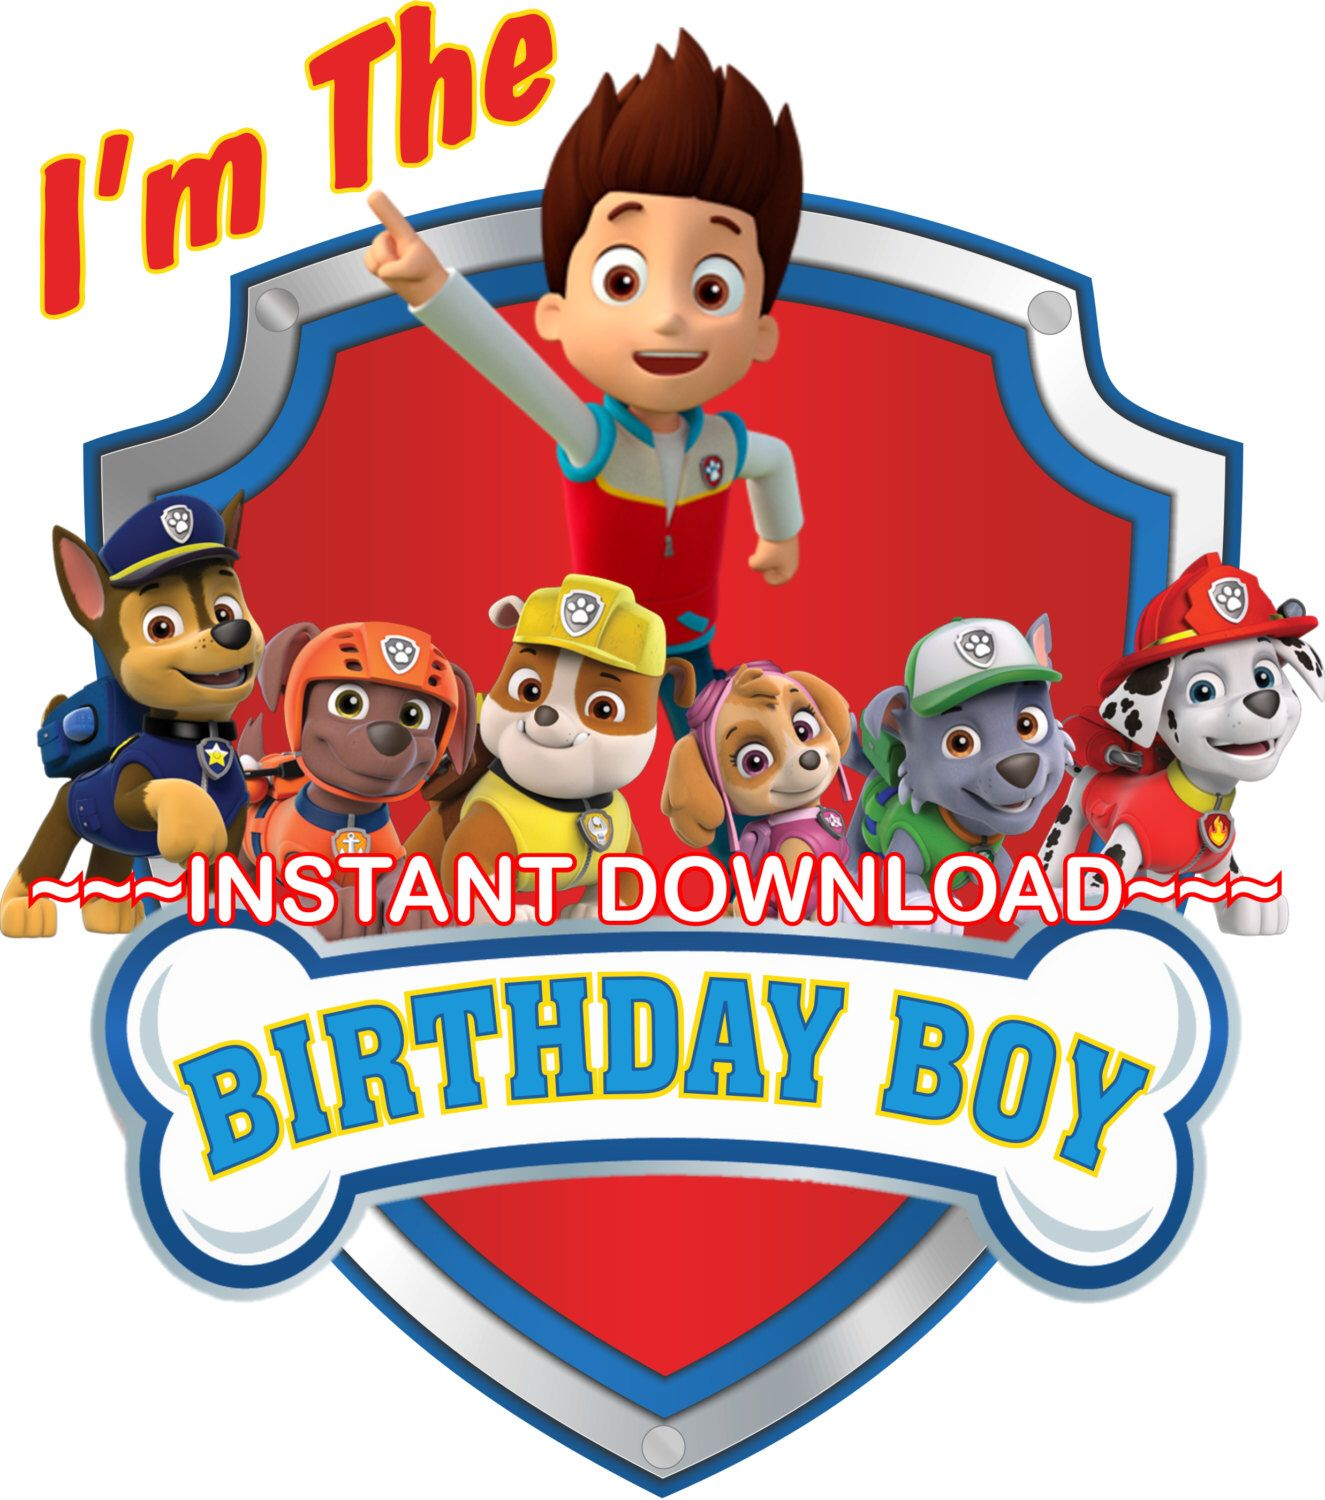 Birthday boy paw patrol clipart clip library download Paw Patrol Iron On Transfer, Personalized DIY Birthday Shirt, Family ... clip library download